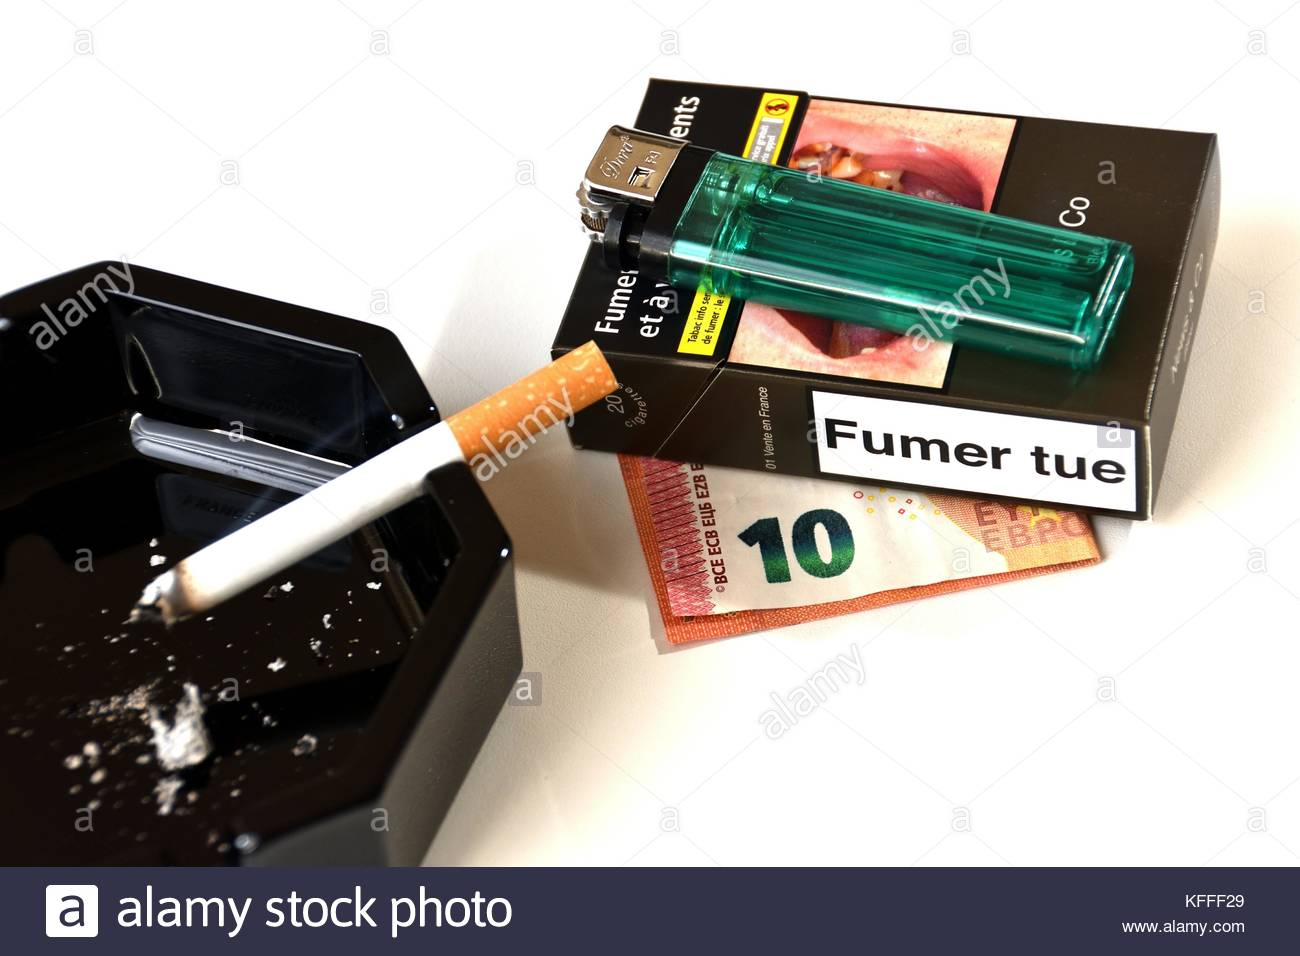 Buy Karelia cigarettes in Detroit